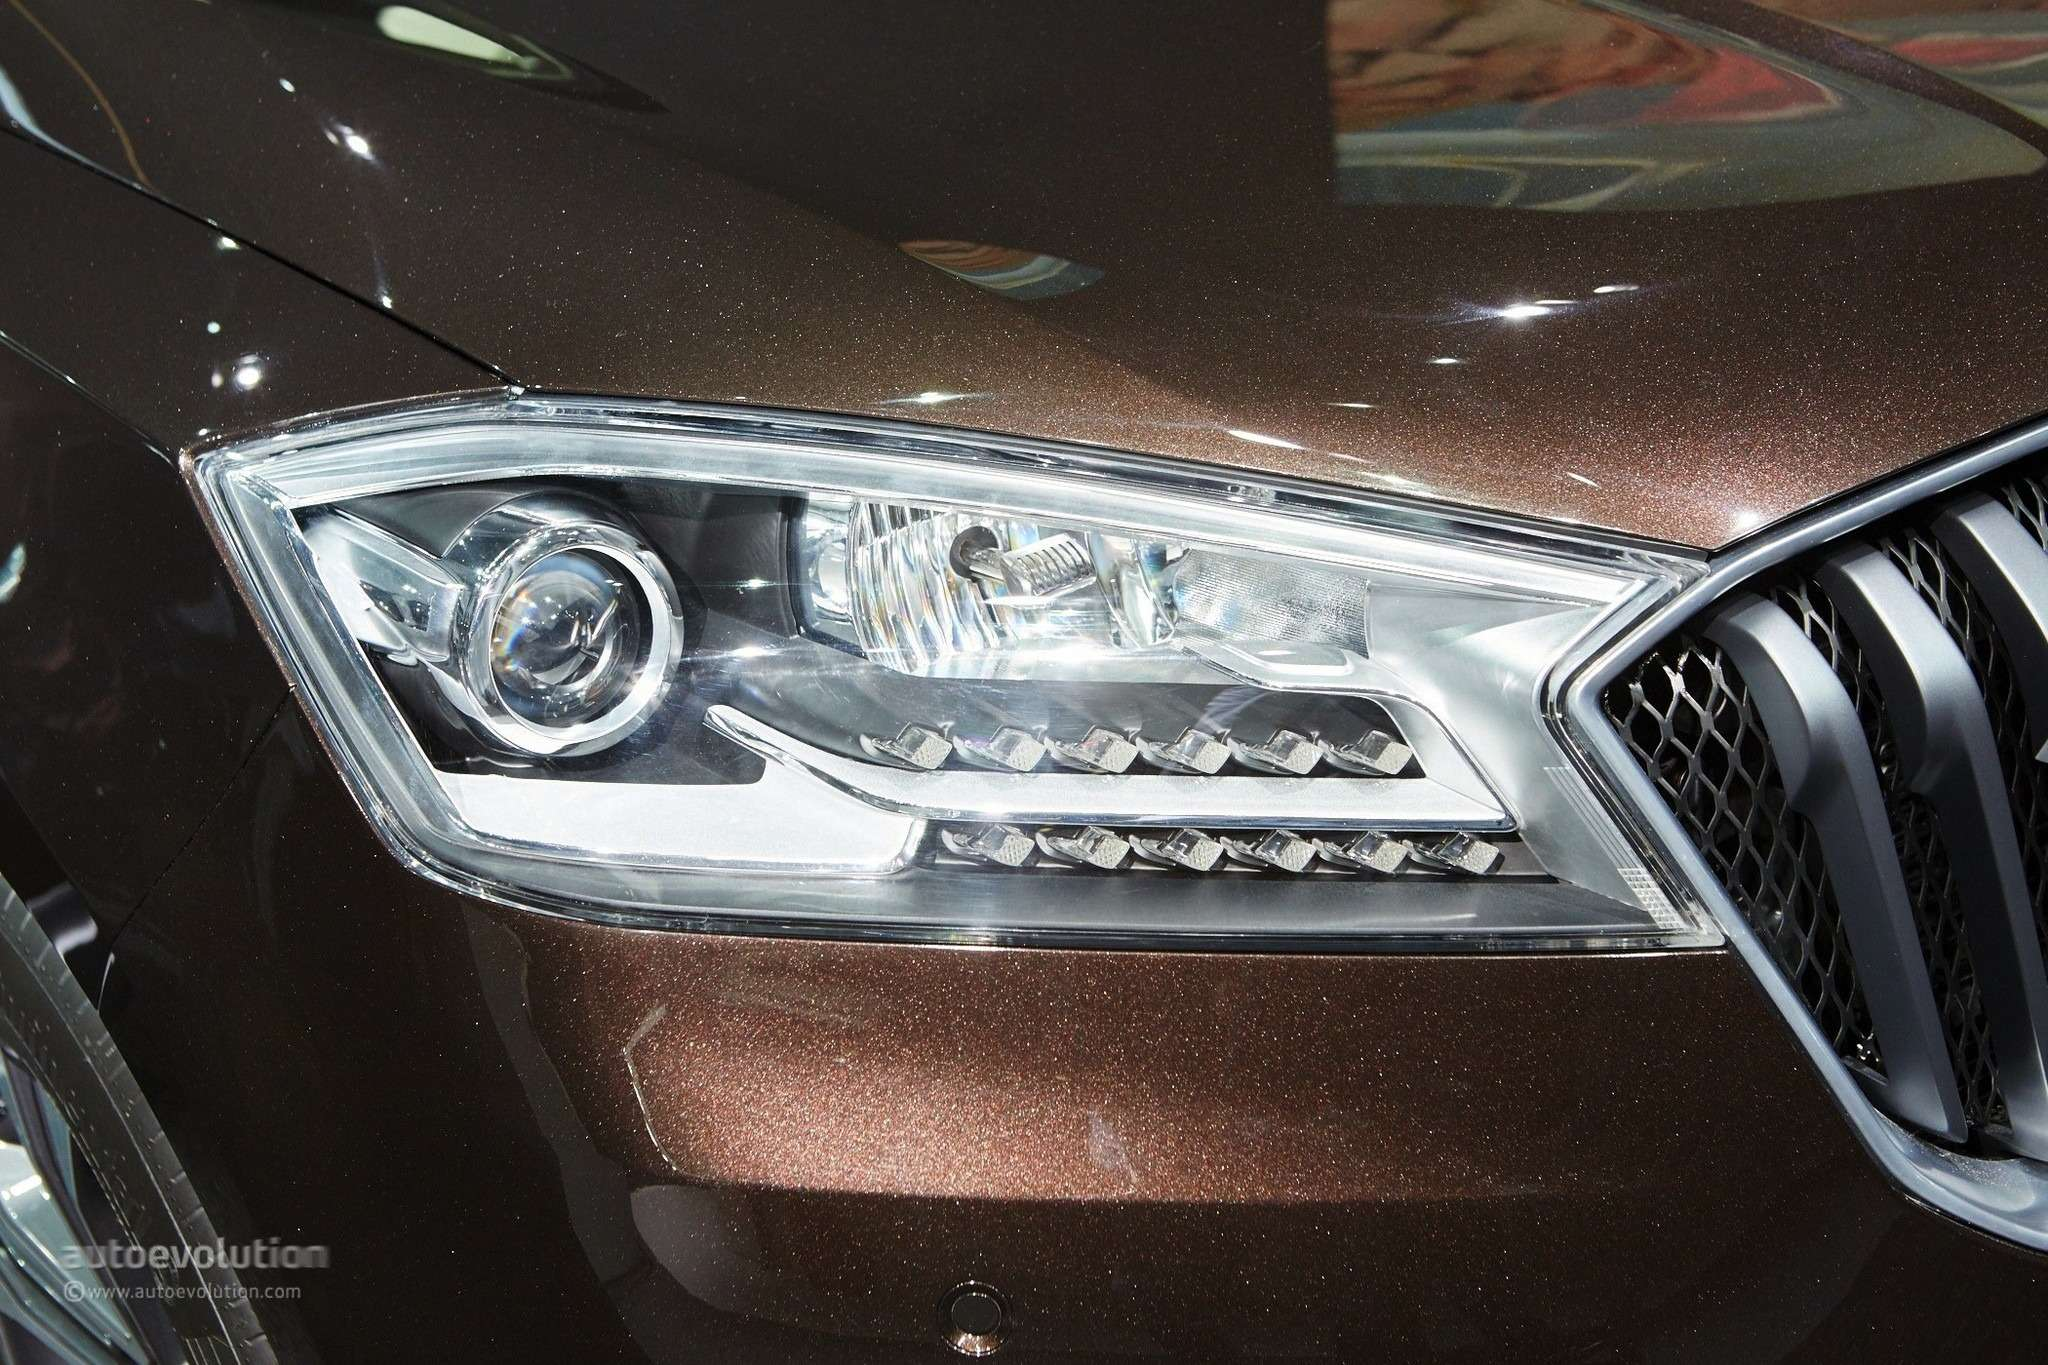 borgward-is-officially-back-with-its-bx7-suv-in-frankfurt-live-photos_3